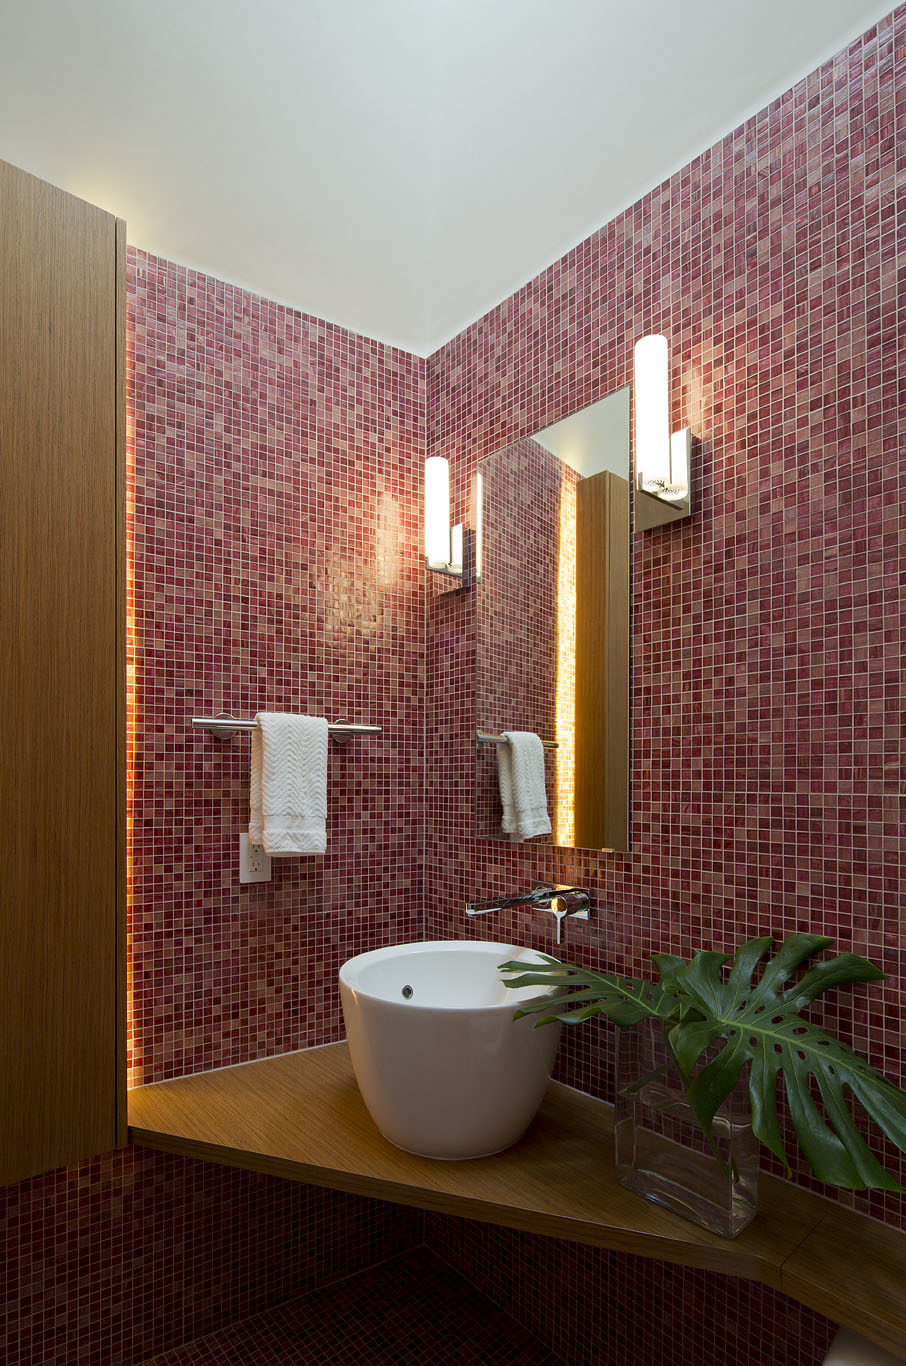 Powder bath welcomes guests with mosaic tile and floating vanity.